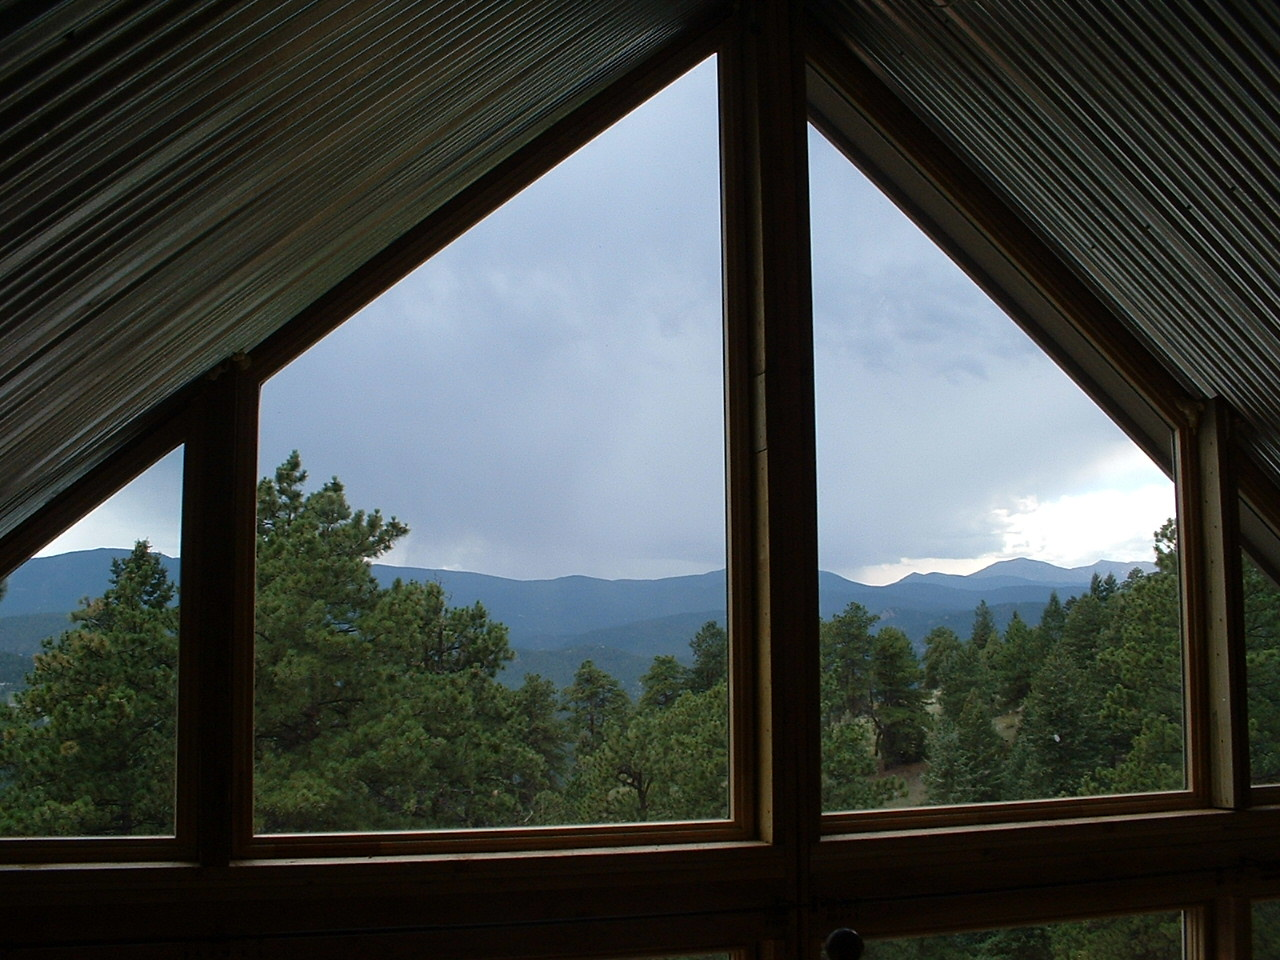 Cabin-mountain view from loft bedroom